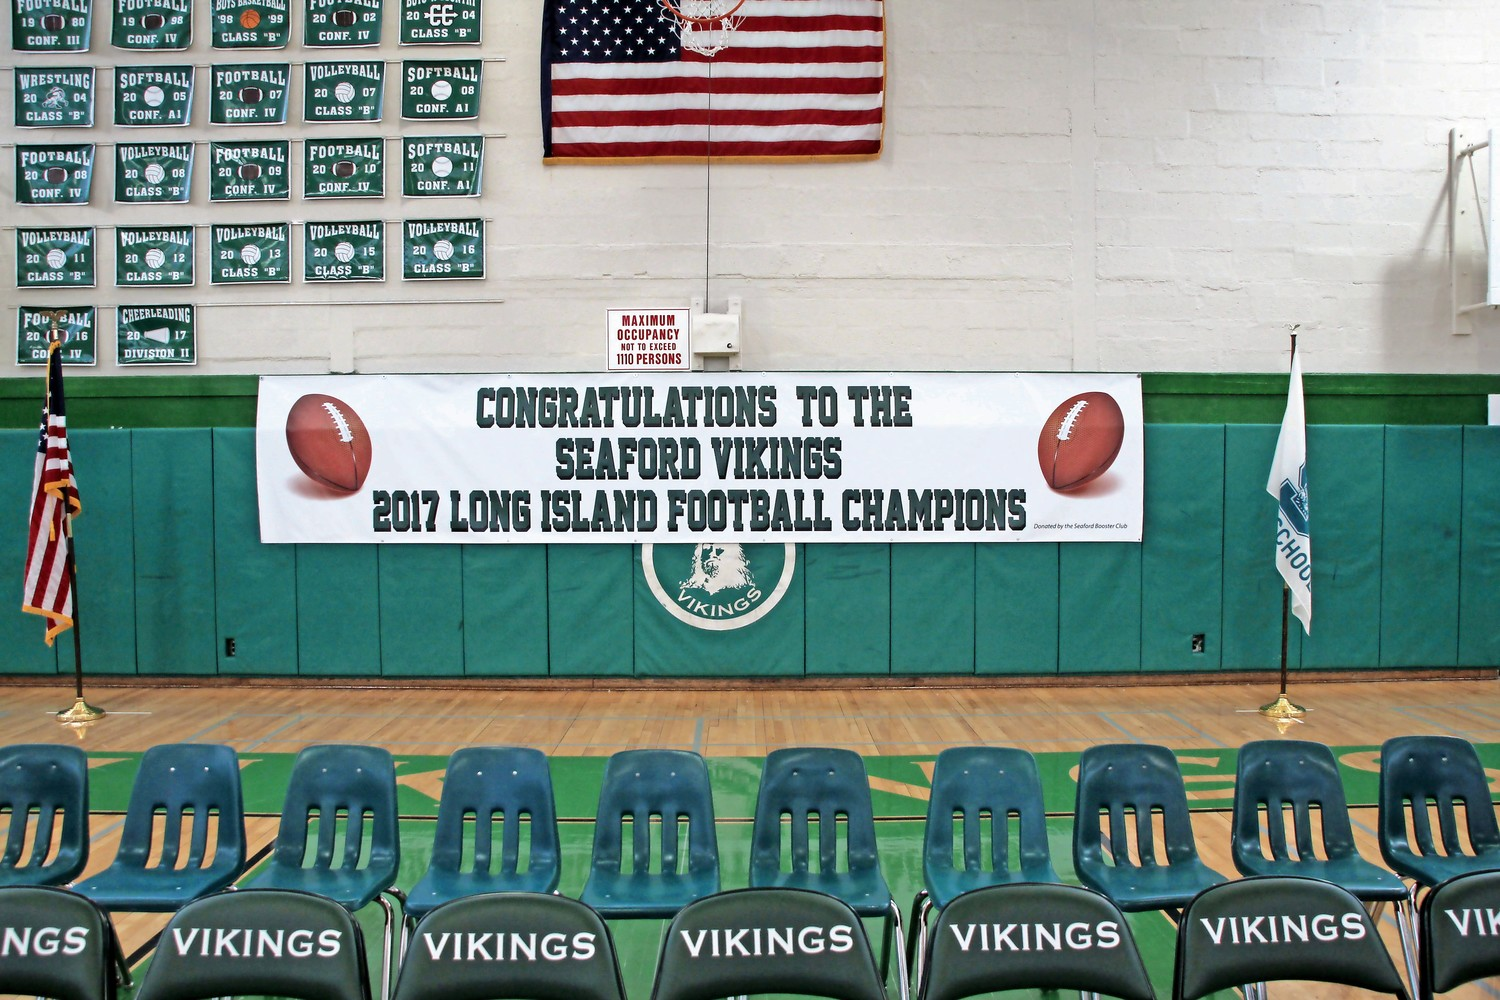 School officials hung a banner in honor of the team's historic win.